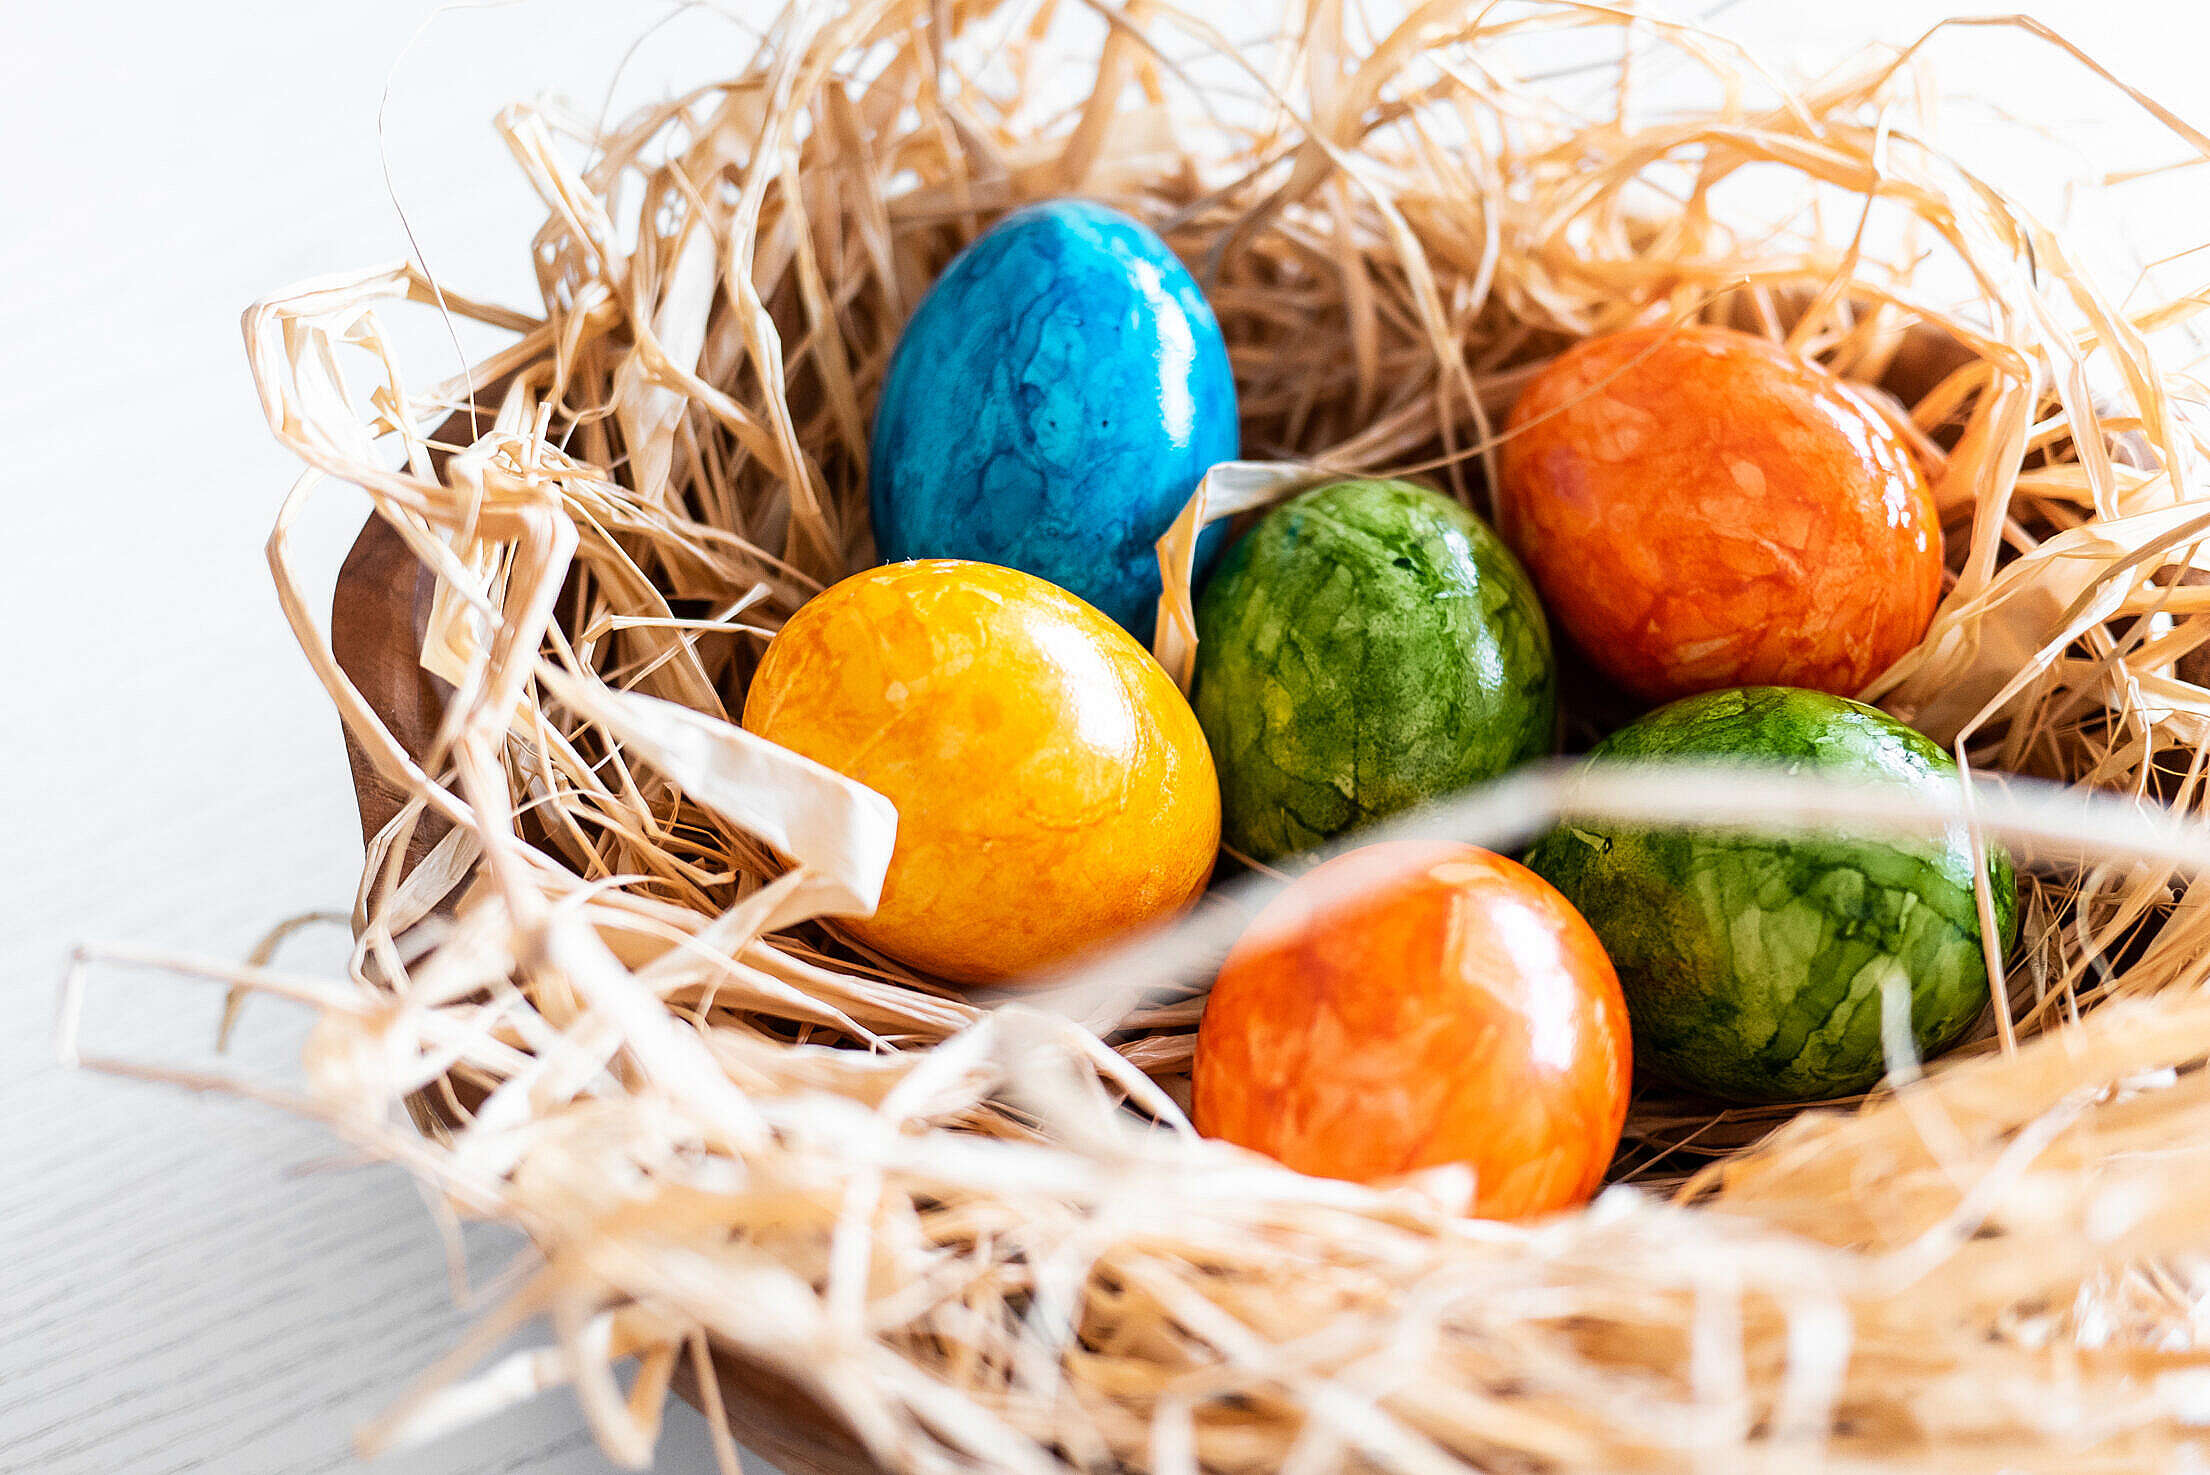 Easter Eggs Colored Close Up Free Stock Photo